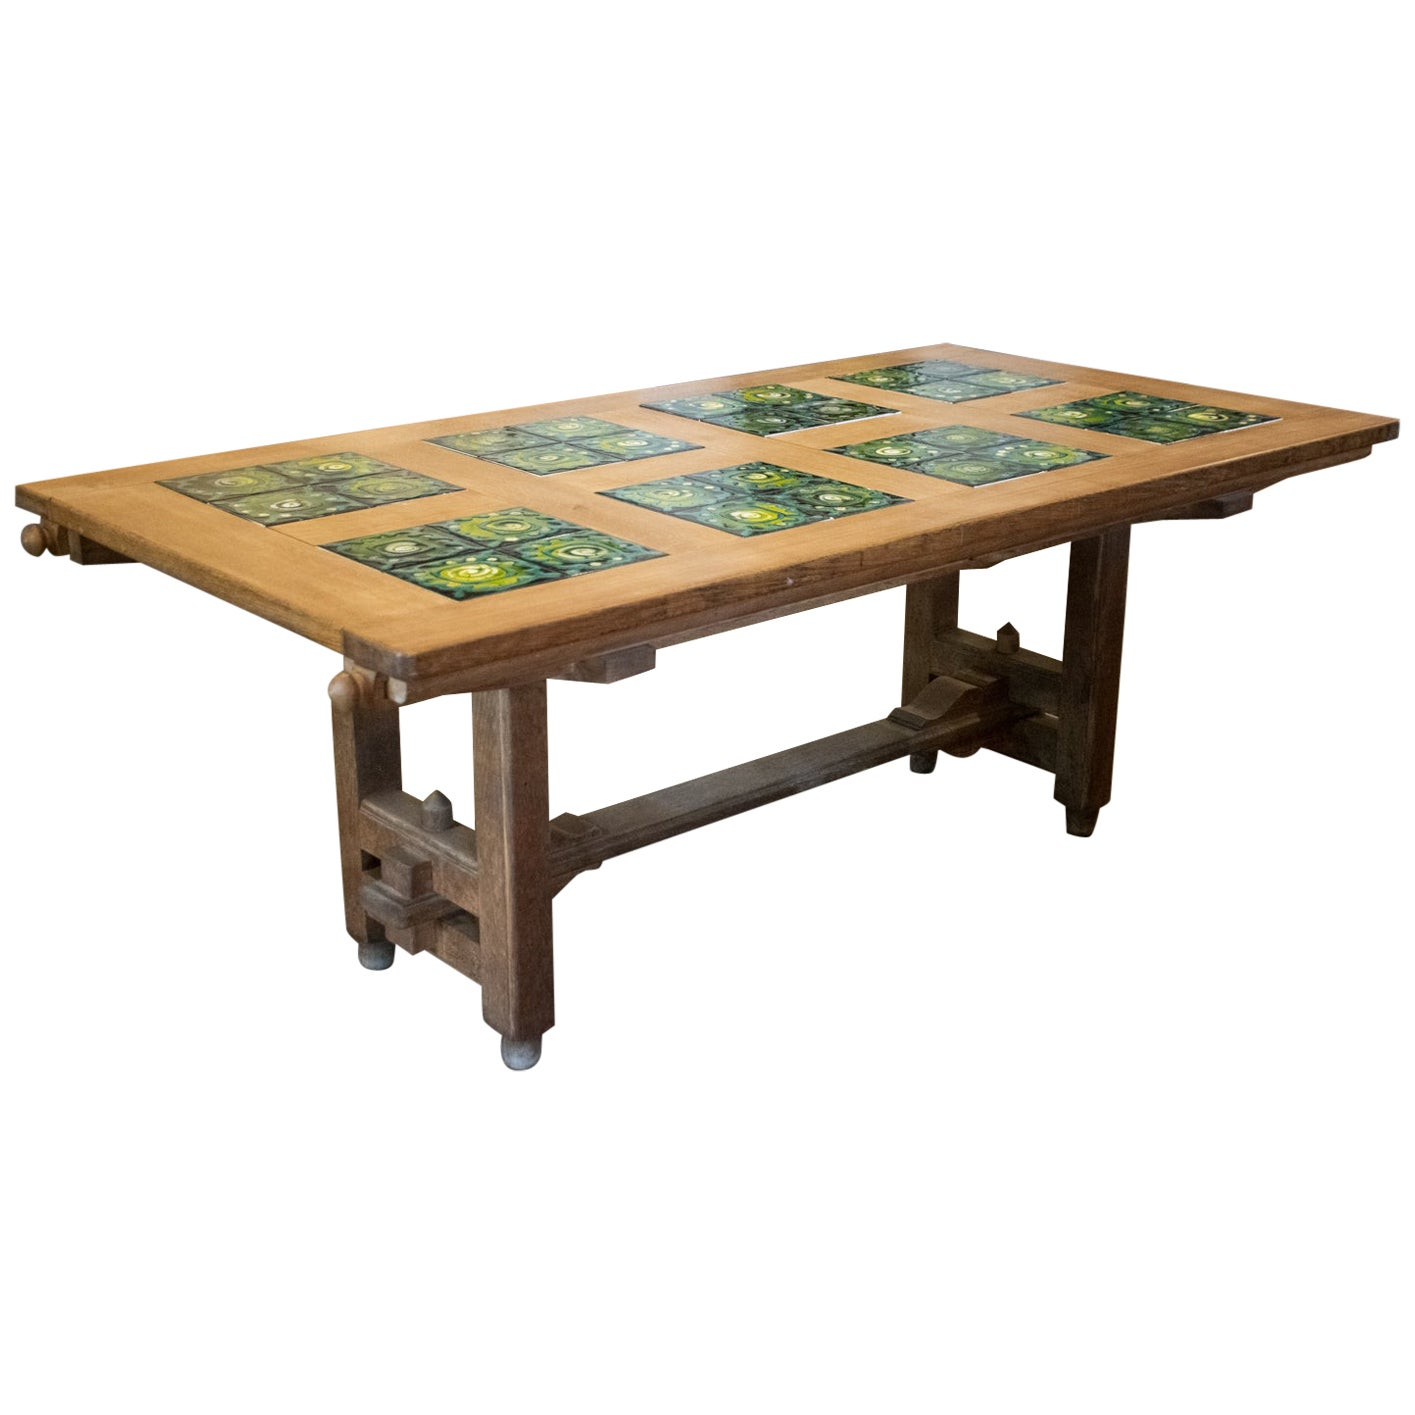 Guillerme et Chambron Oak and Tile Dining Table with Extensions, France, 1960